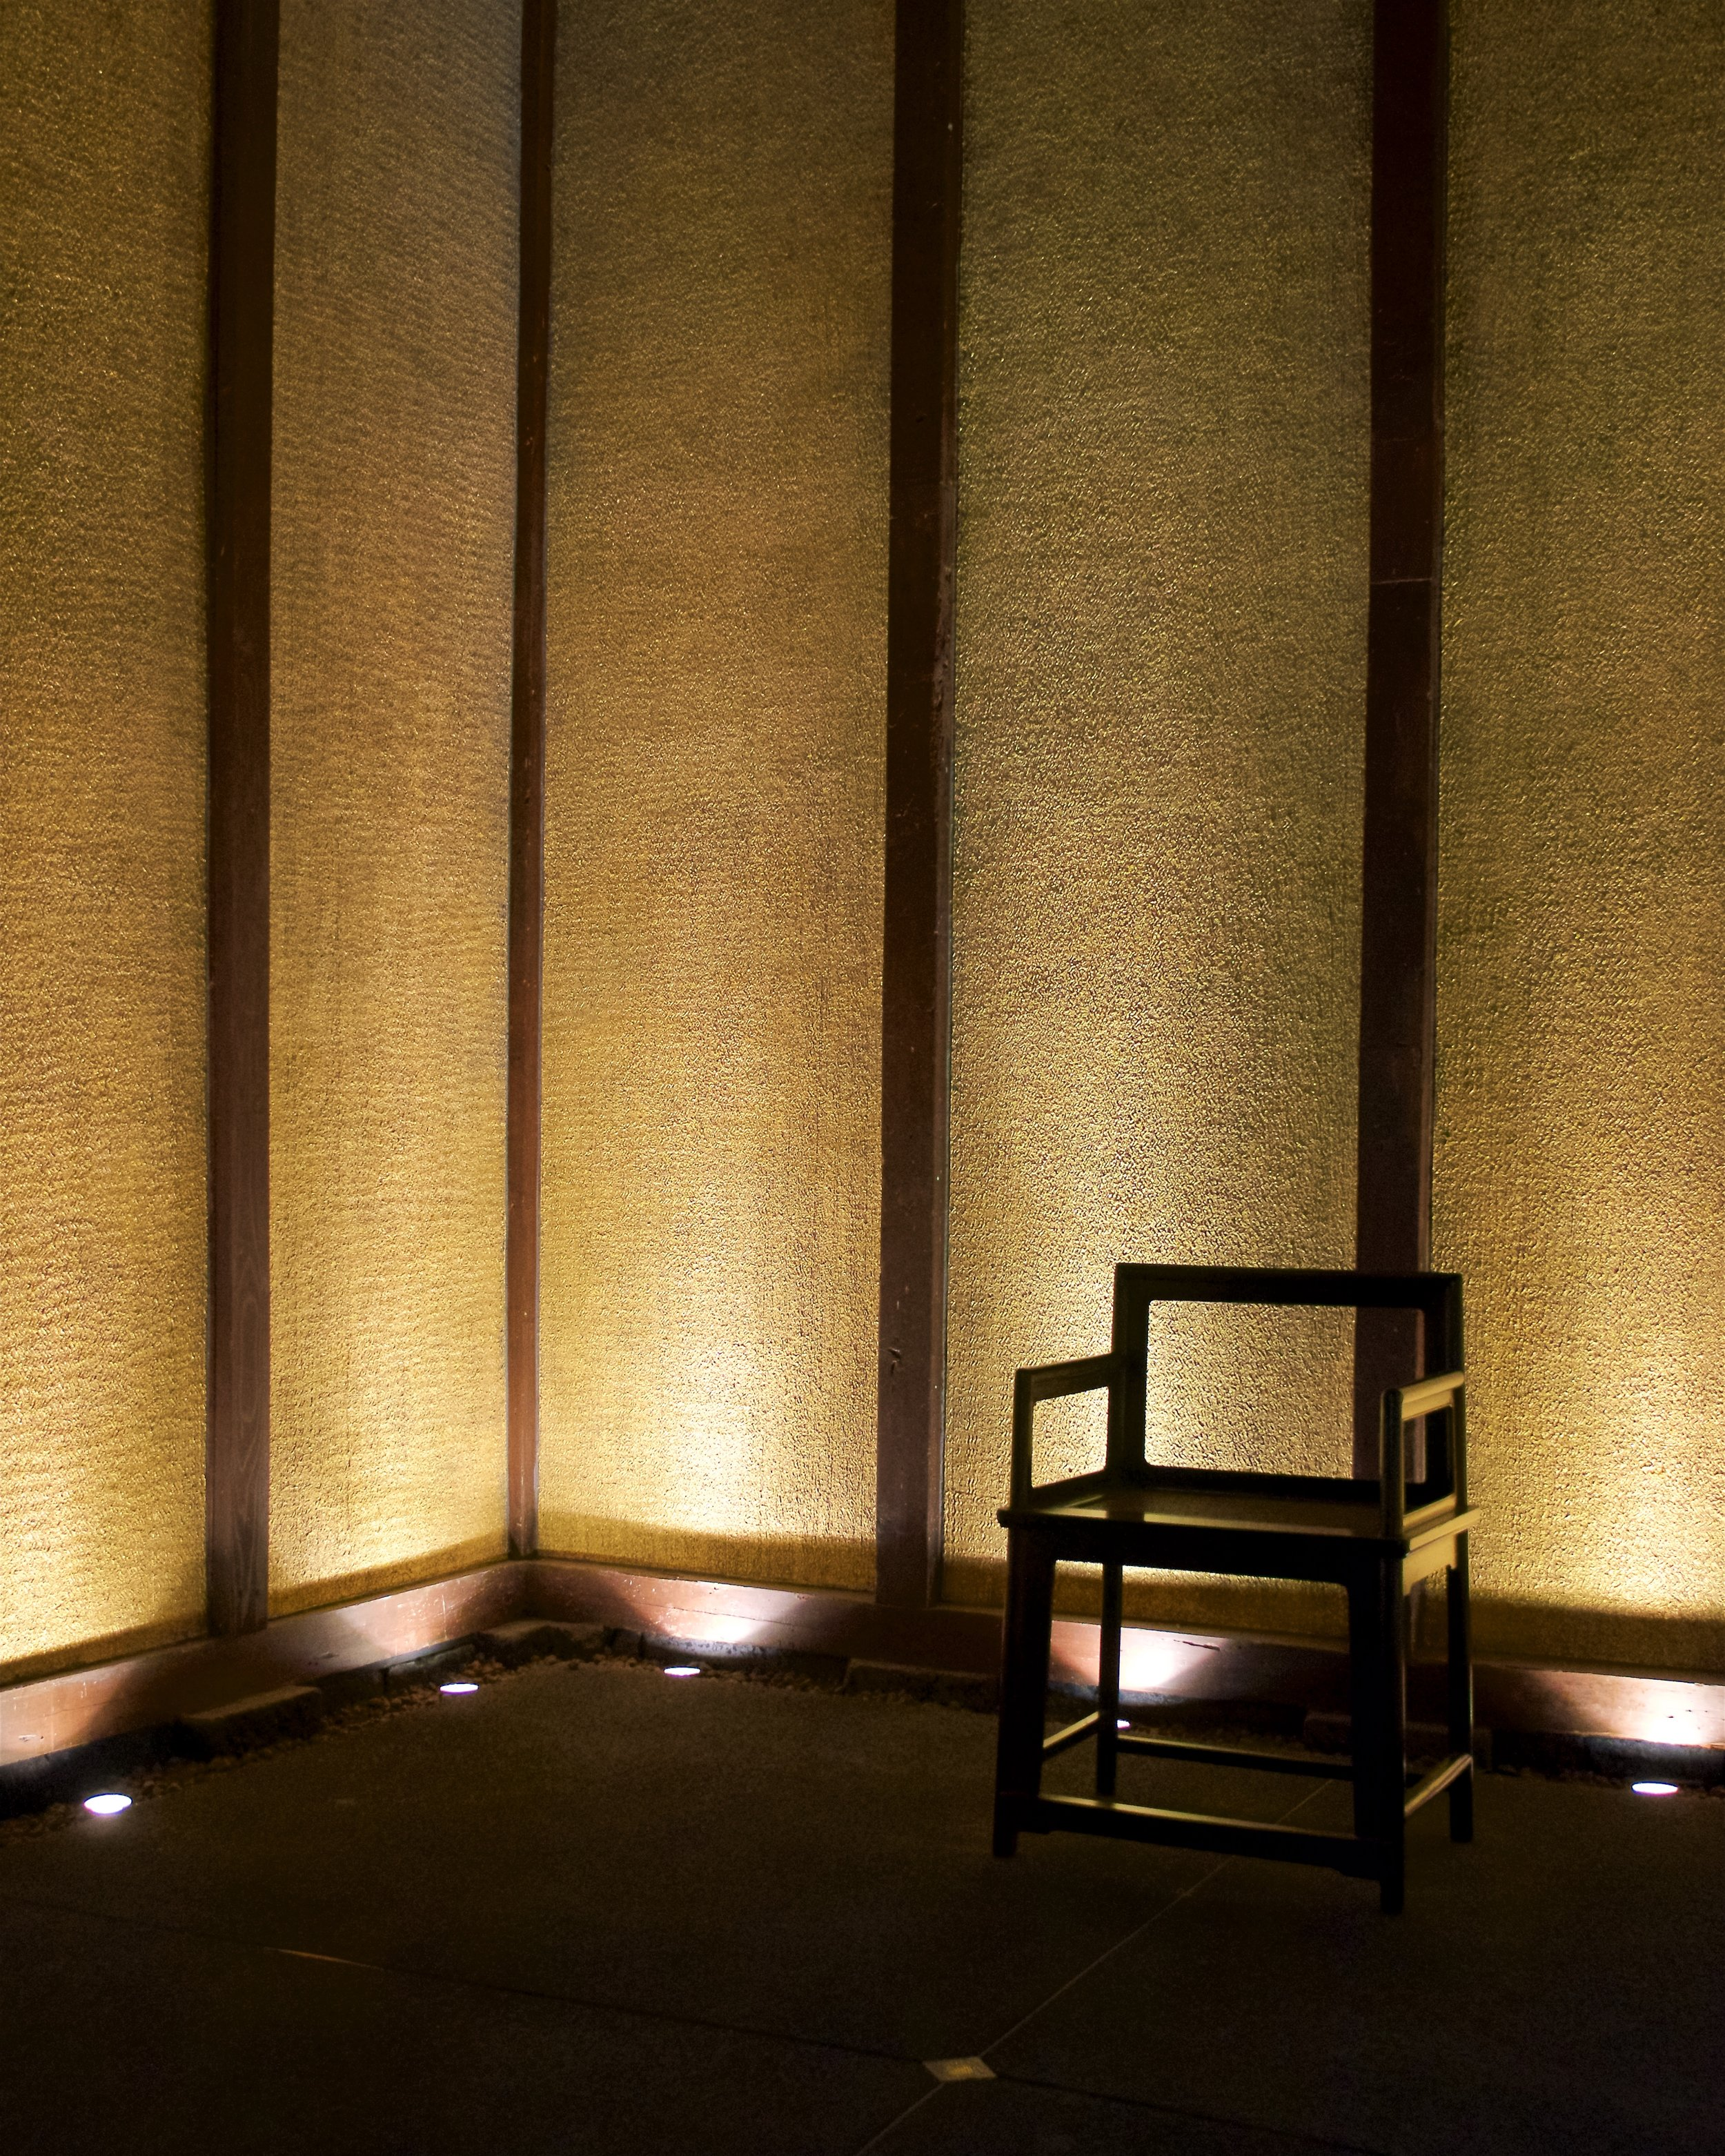 Storehouse with 24k gold leaf on the walls